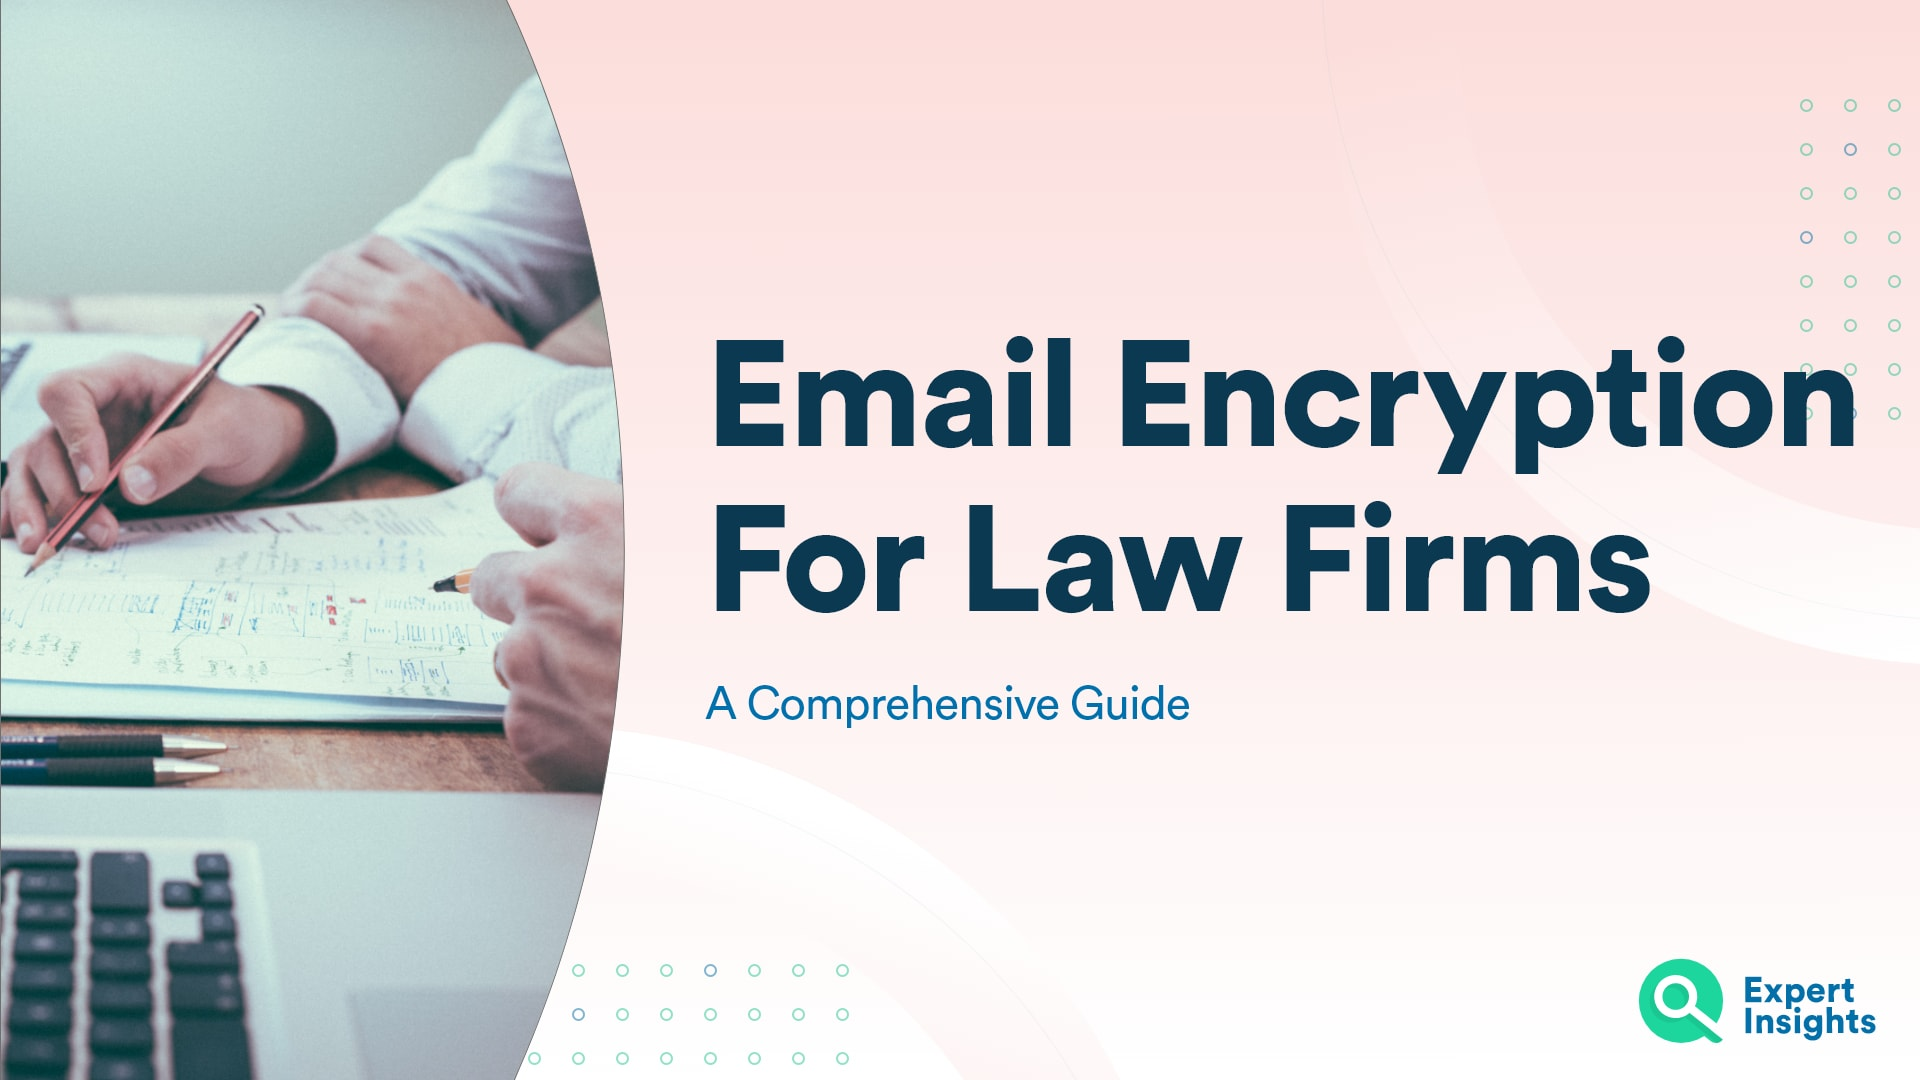 Email Encryption For Law Firms: A Comprehensive Guide - Expert Insights